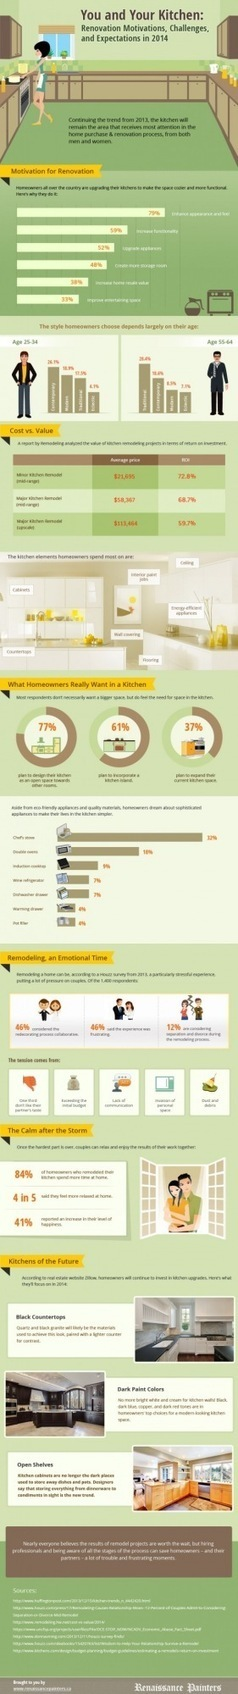 You and Your Kitchen: Renovation Motivations, Challenges, and Expectations in 2014 | Renaissance Painters | Scoop.it